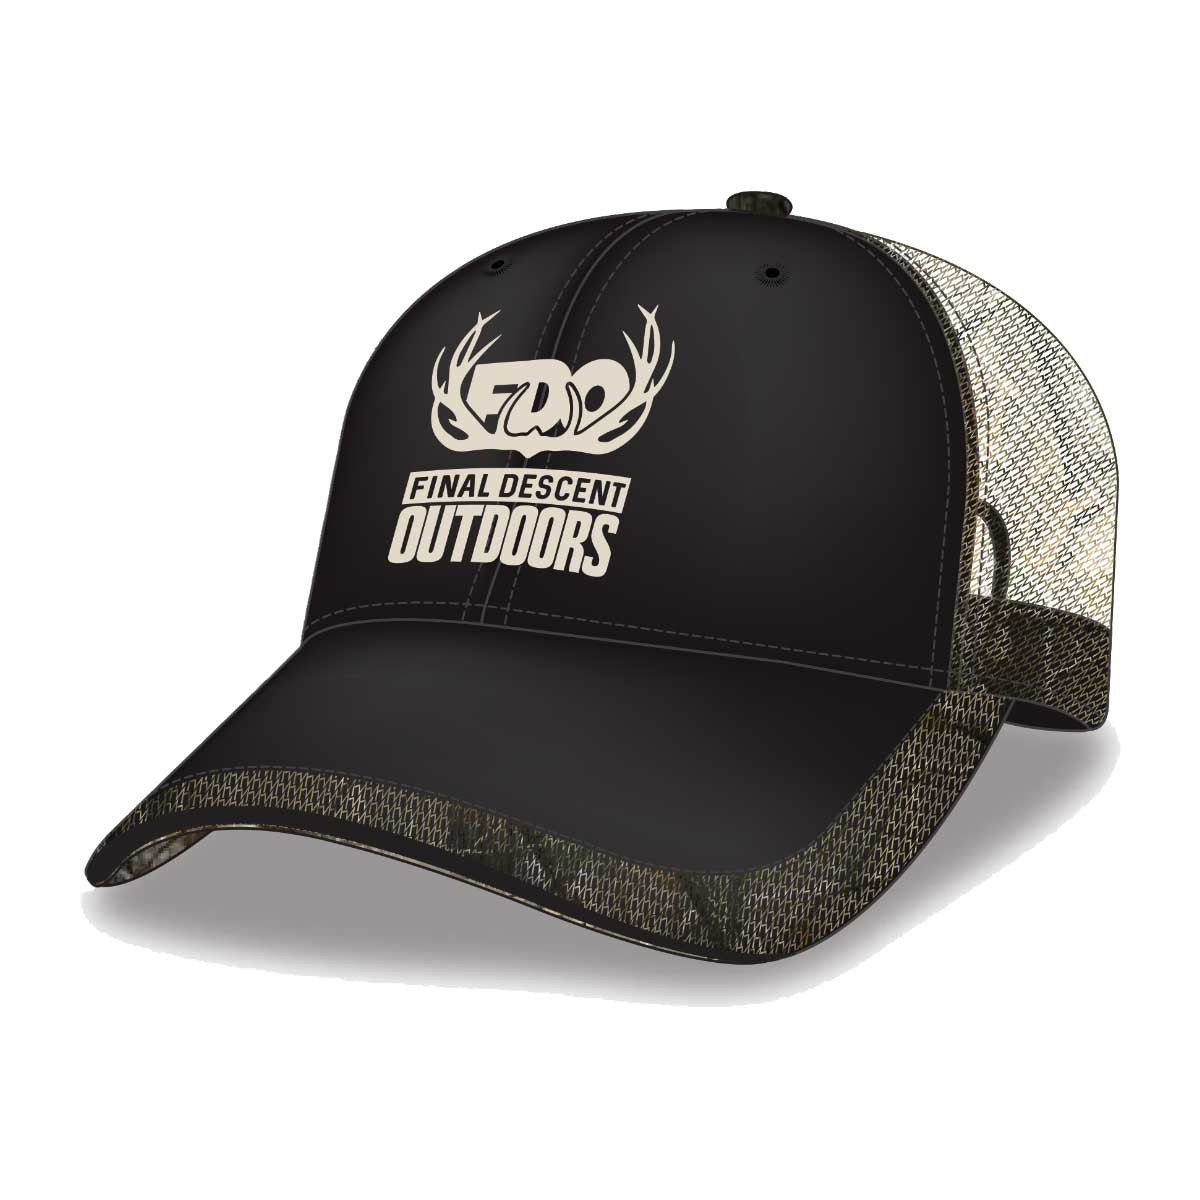 Final Descent Black Cotton Twill & Realtree AP Camo Cap